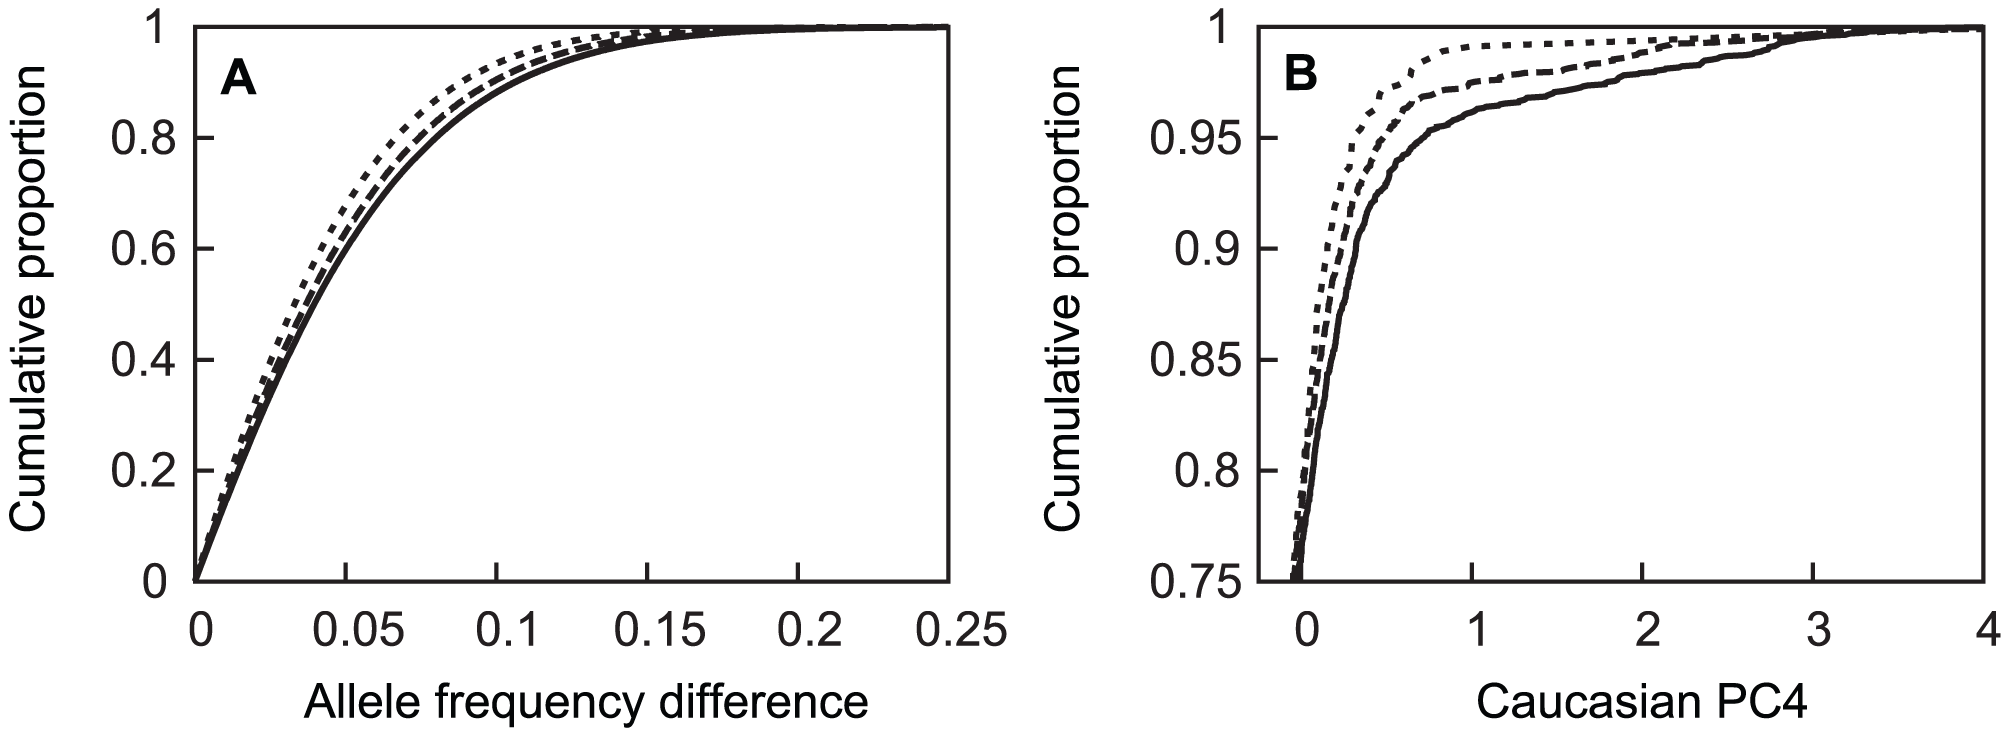 Cumulative distribution of absolute value of allele frequency differences between subpopulations and <i>APOE</i> genotypes.